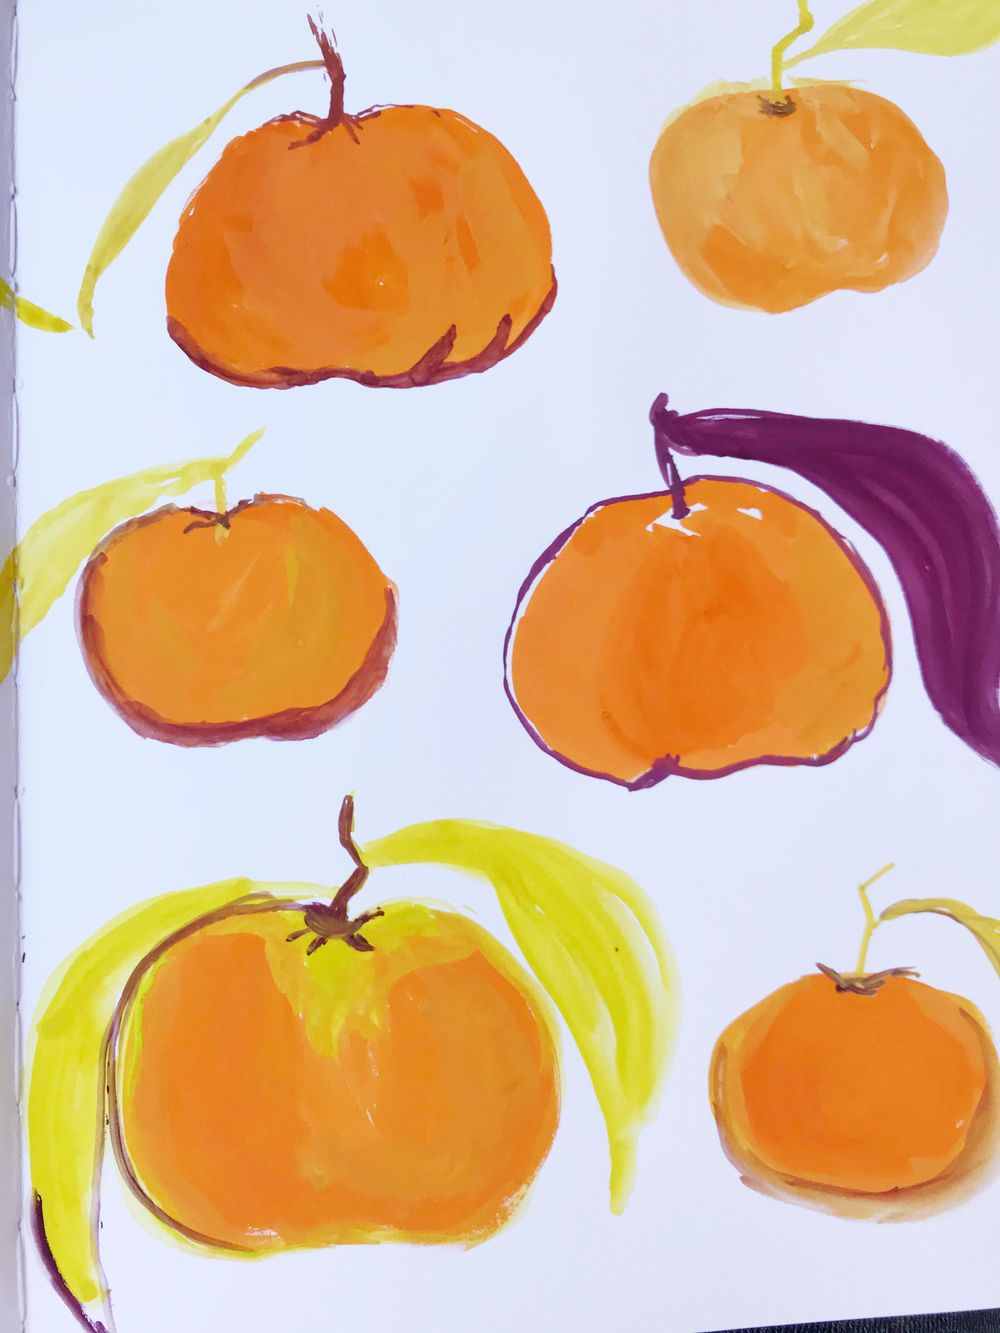 Painting Citrus - image 1 - student project